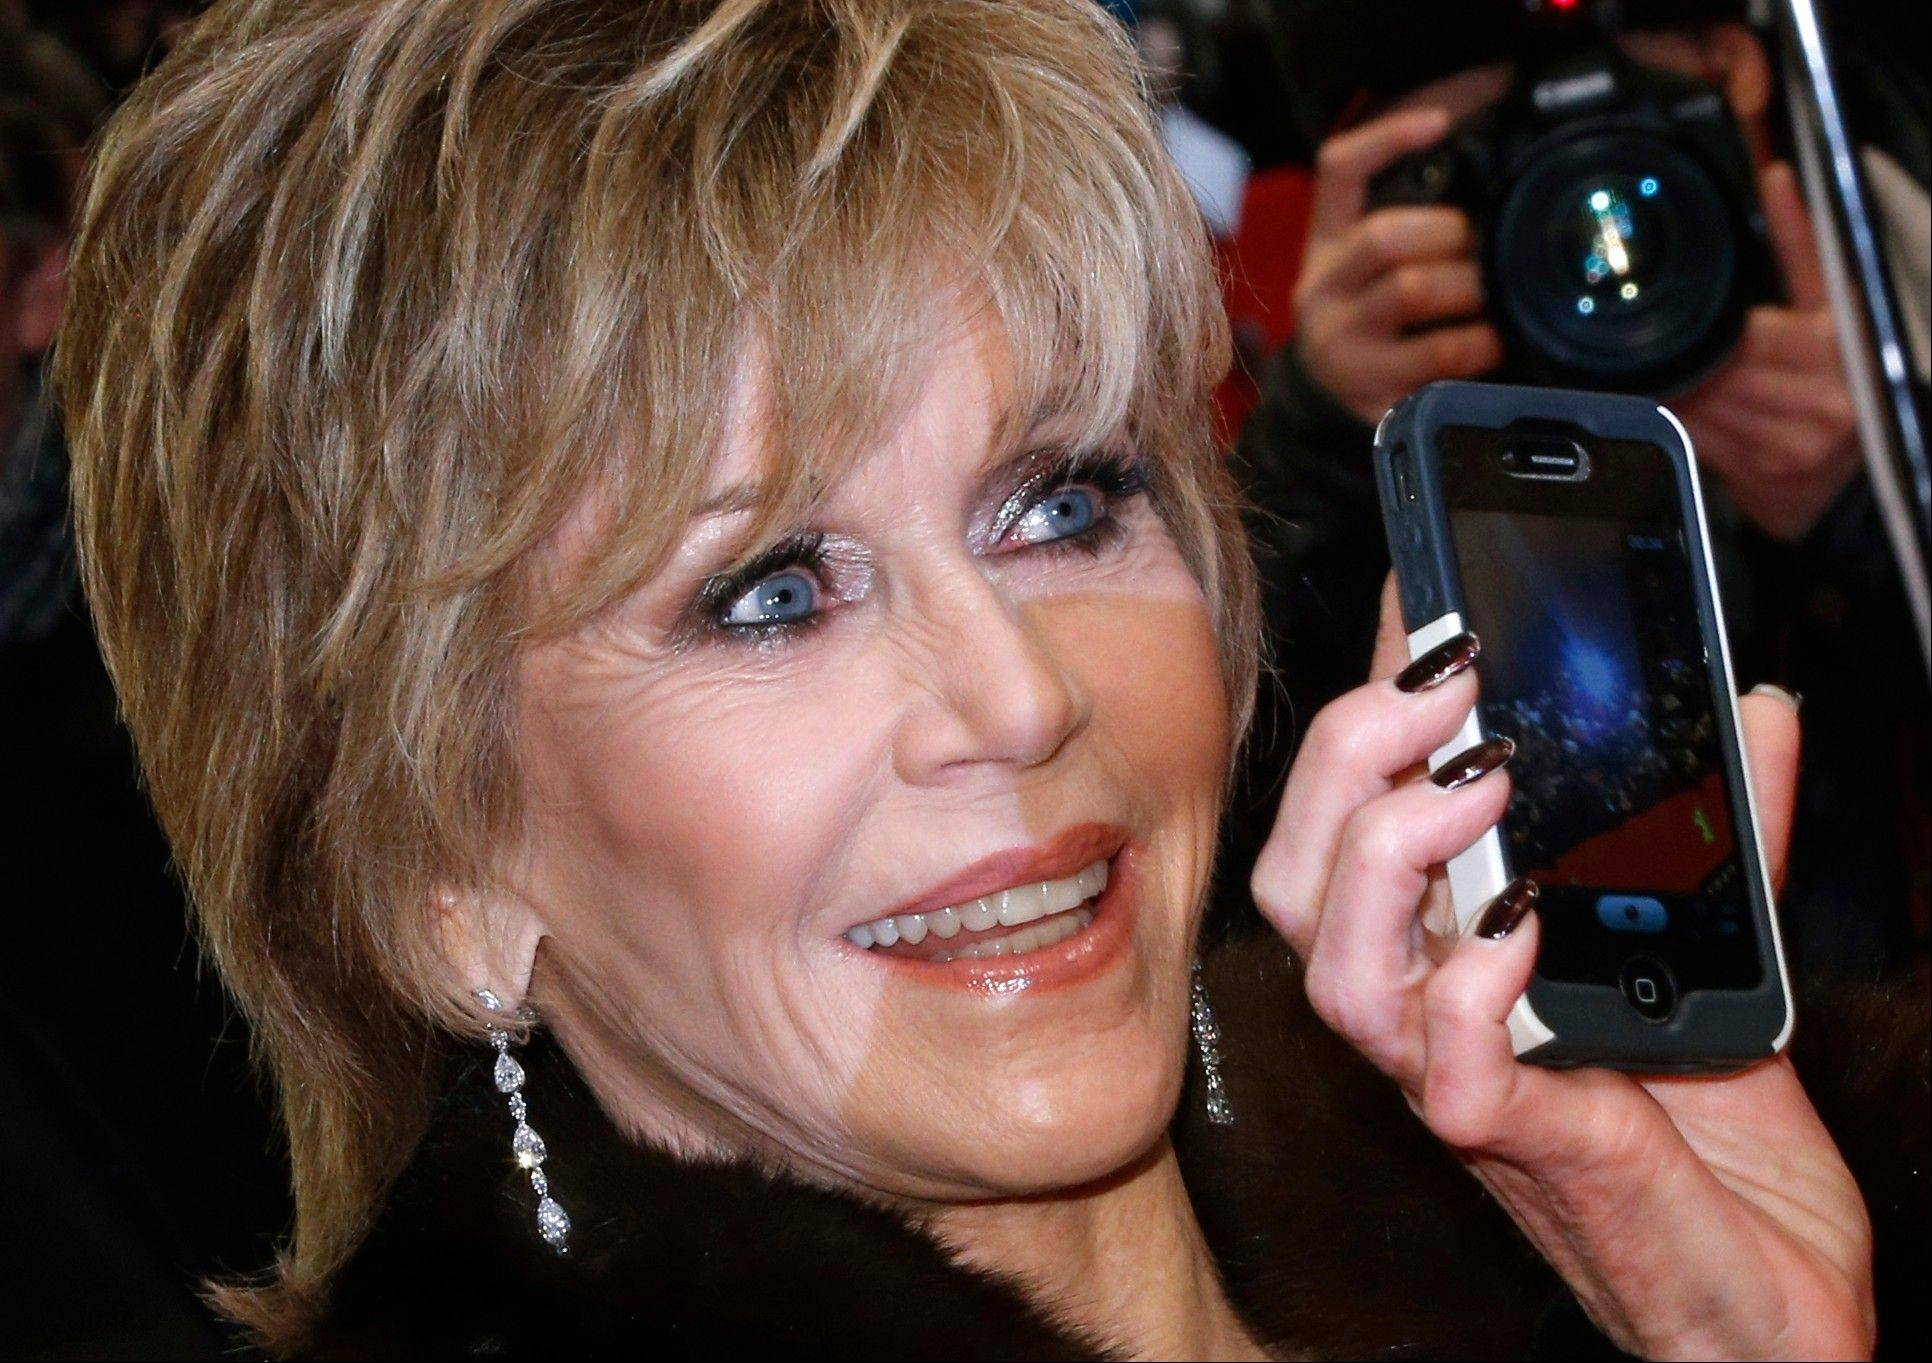 Jane Fonda will receive the American Film Institute�s 42nd Life Achievement Award, one of Hollywood�s most prestigious career honors. The AFI award will be presented at a star-studded gala on June 5, 2014.